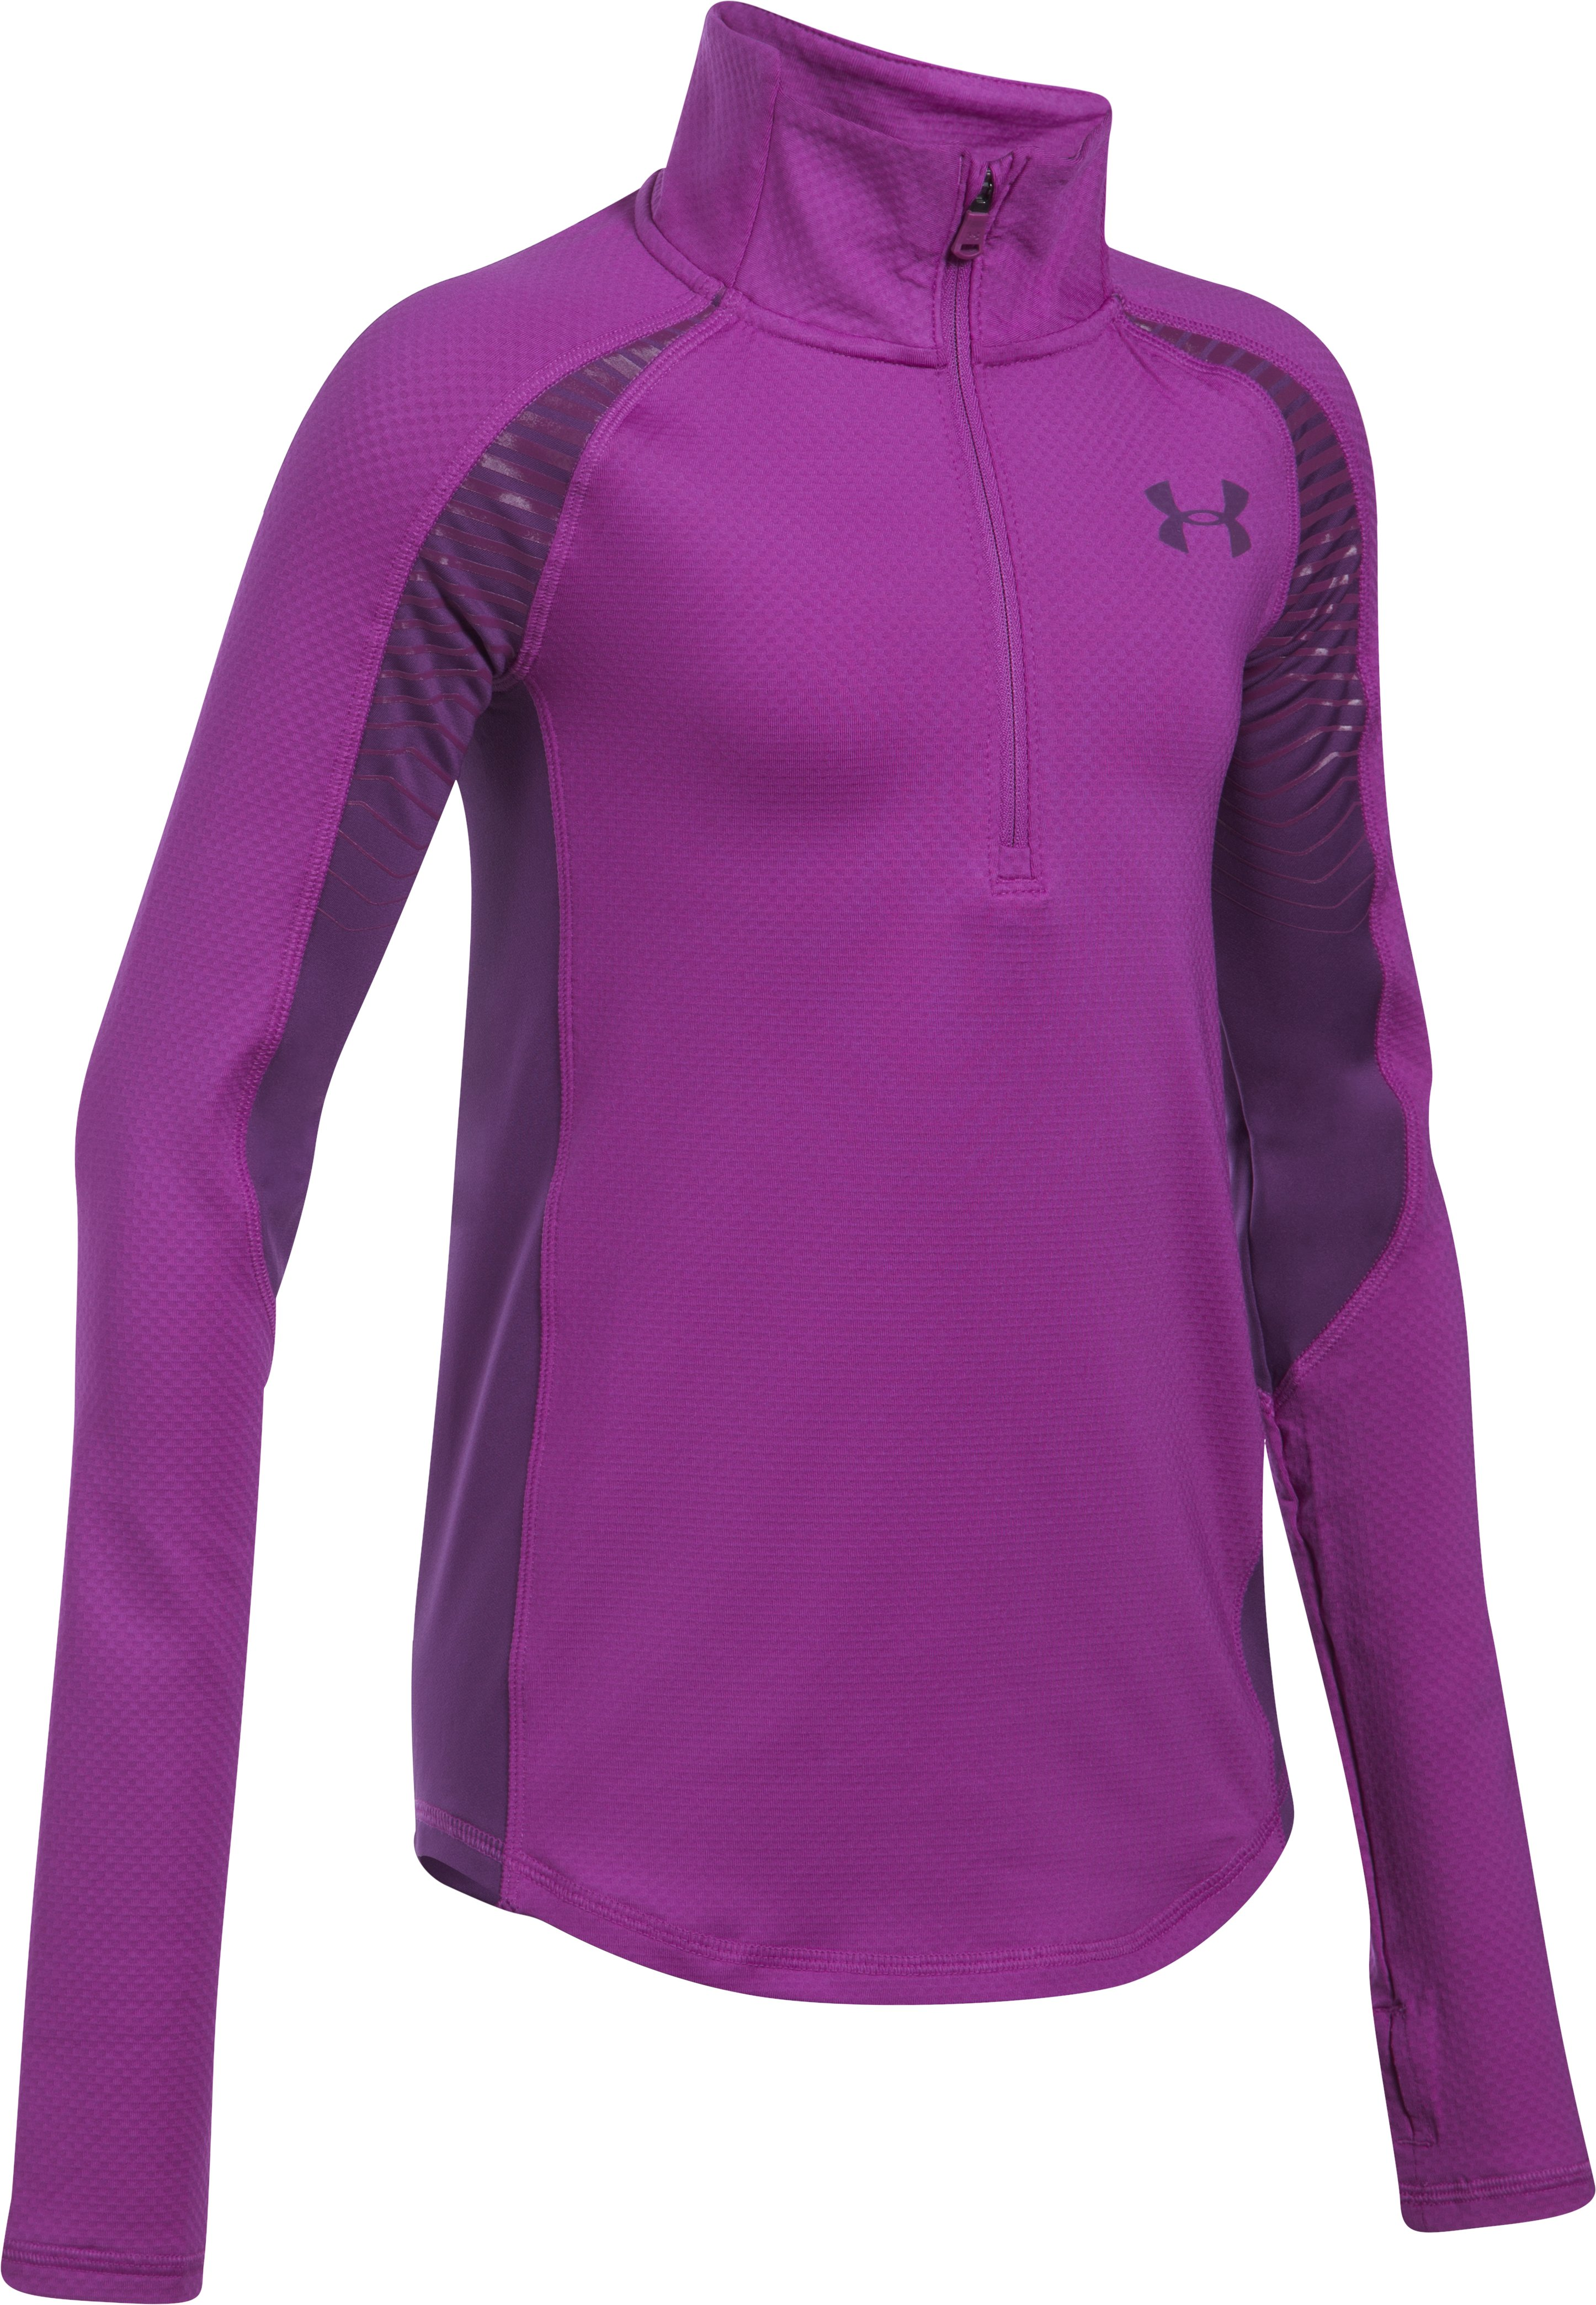 Girls' ColdGear® Reactor ½ Zip, PURPLE RAVE